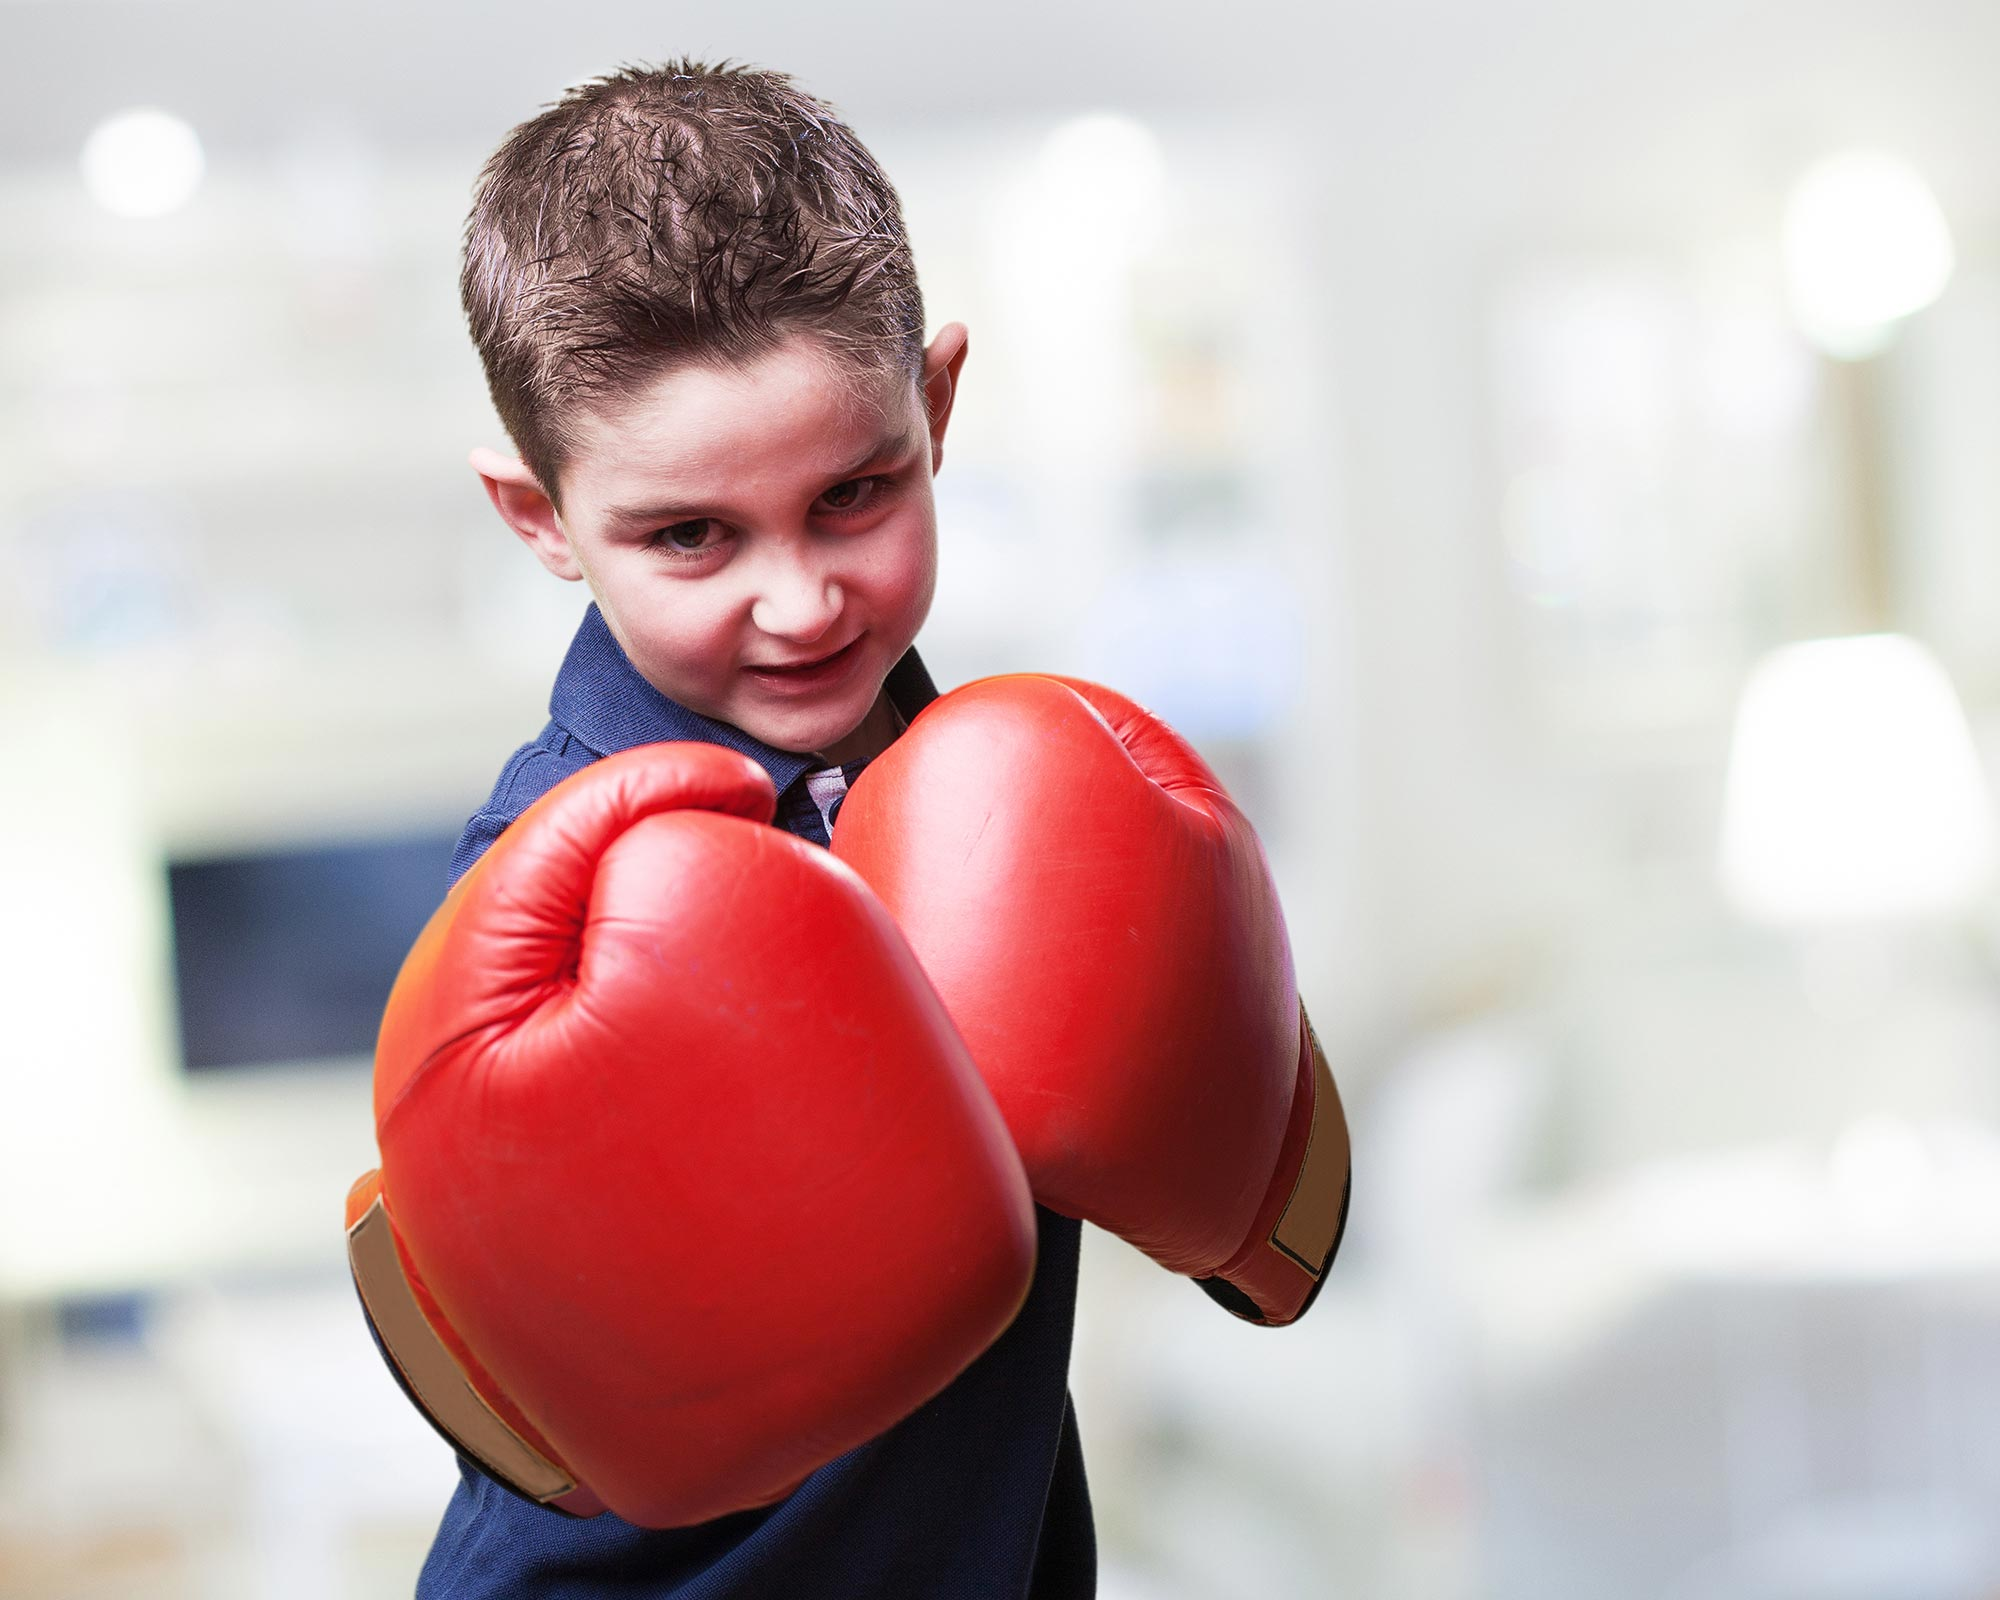 4 Best Punching Bag For Kids [Buying Guide]